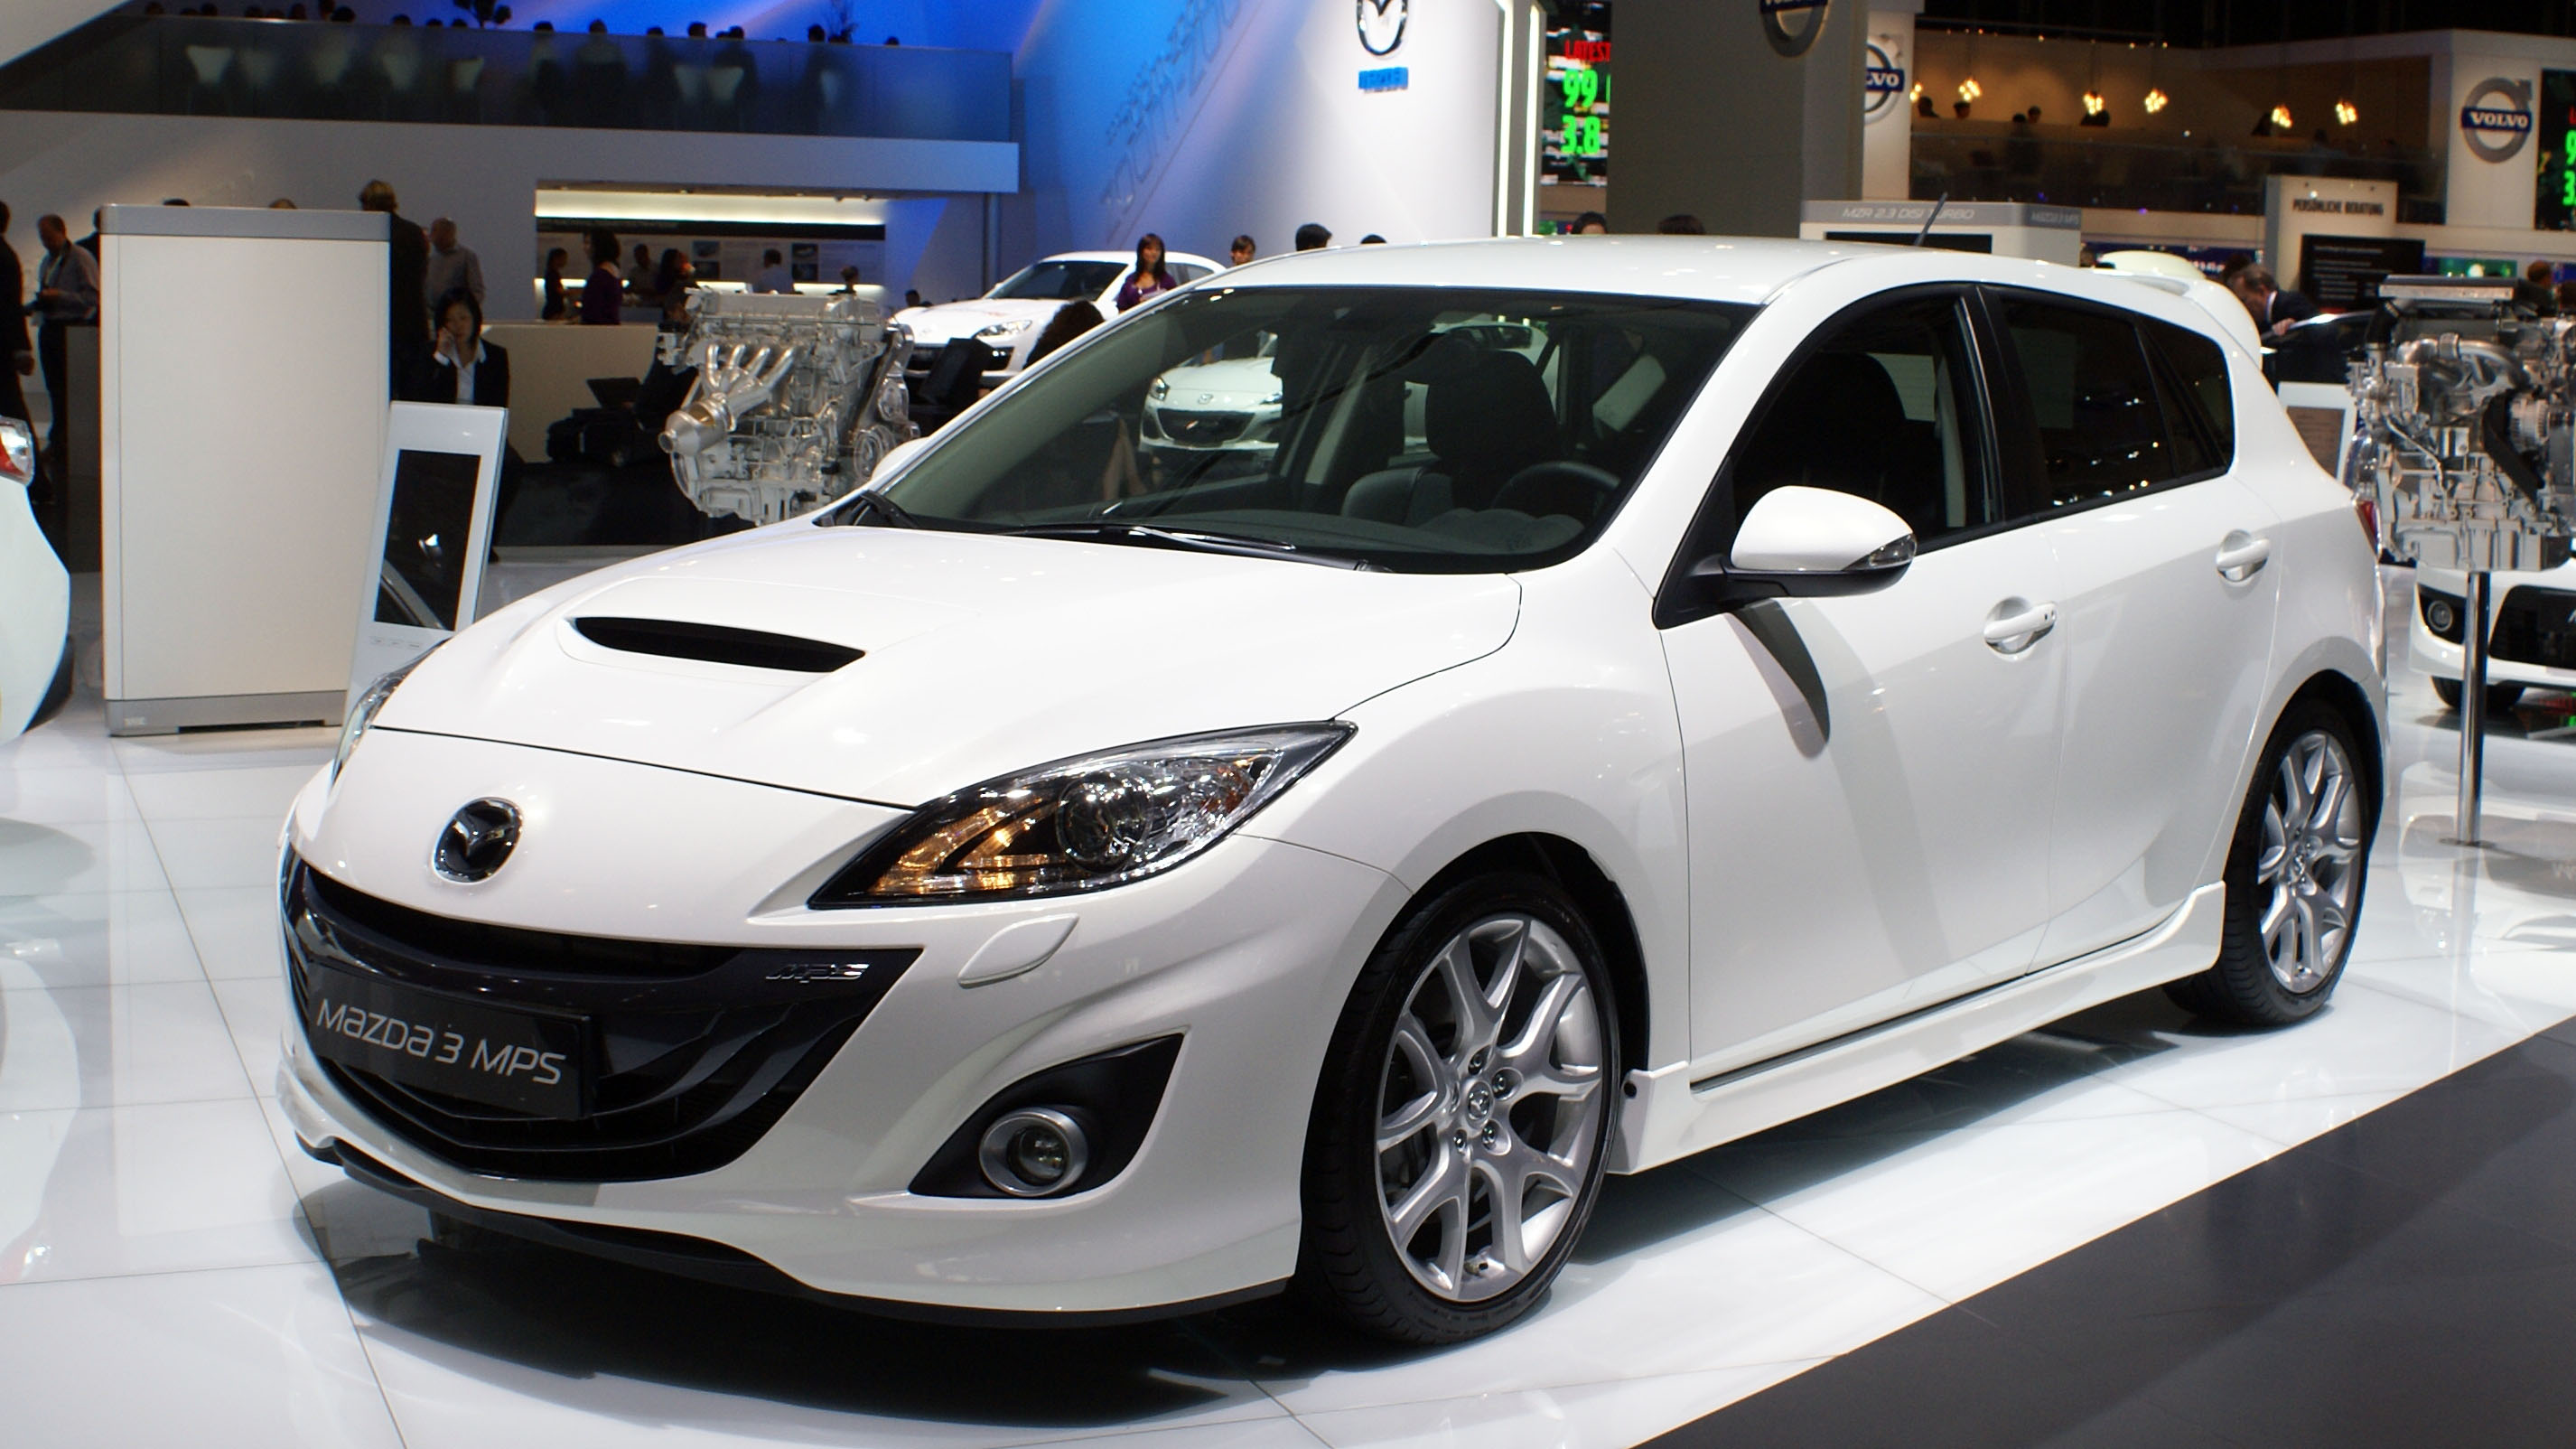 mazda3 mps reviews mazda3 mps car reviews. Black Bedroom Furniture Sets. Home Design Ideas